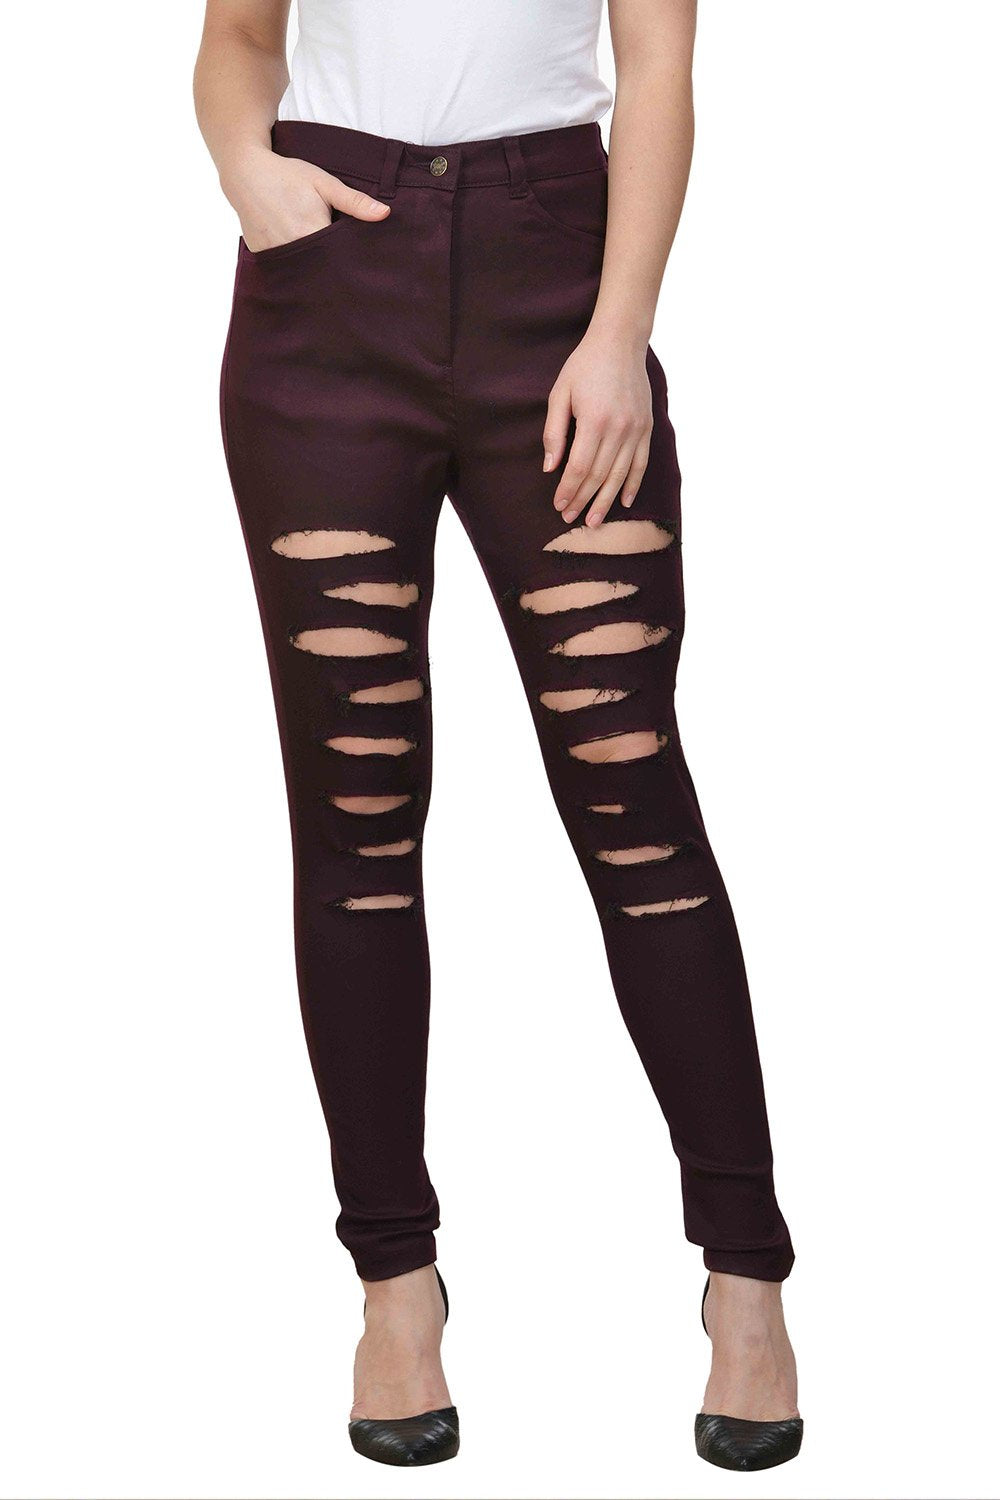 Castle Wine Solid Cotton Lycra Ripped Pants